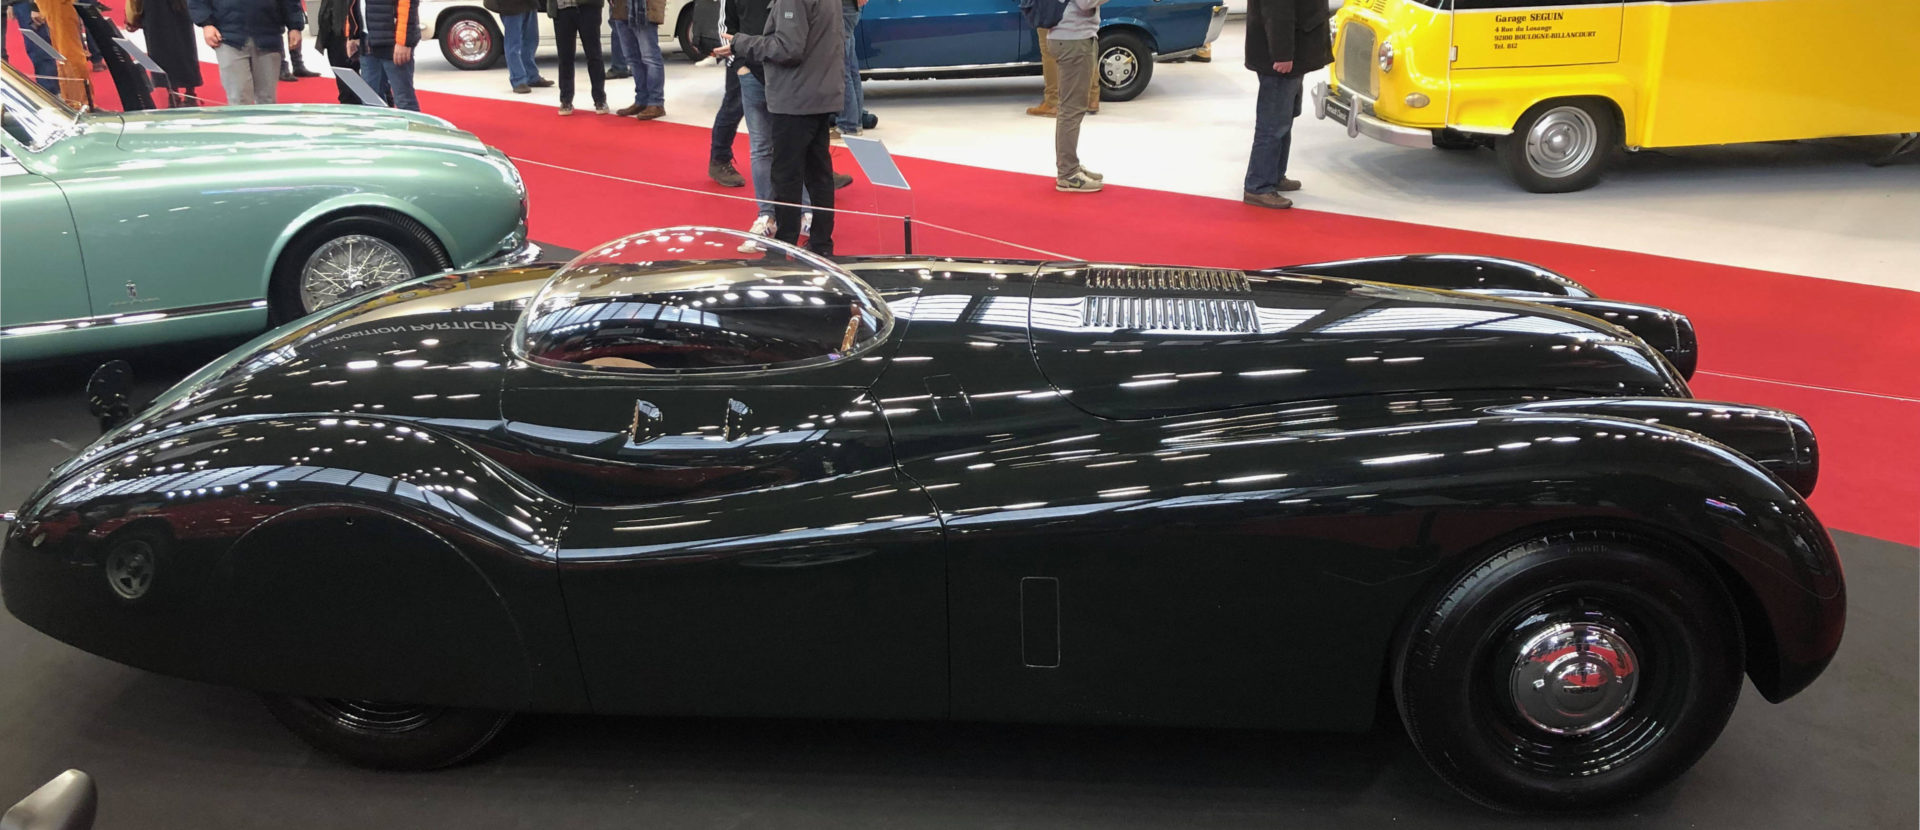 1952 Jaguar XK120 at Retromobile